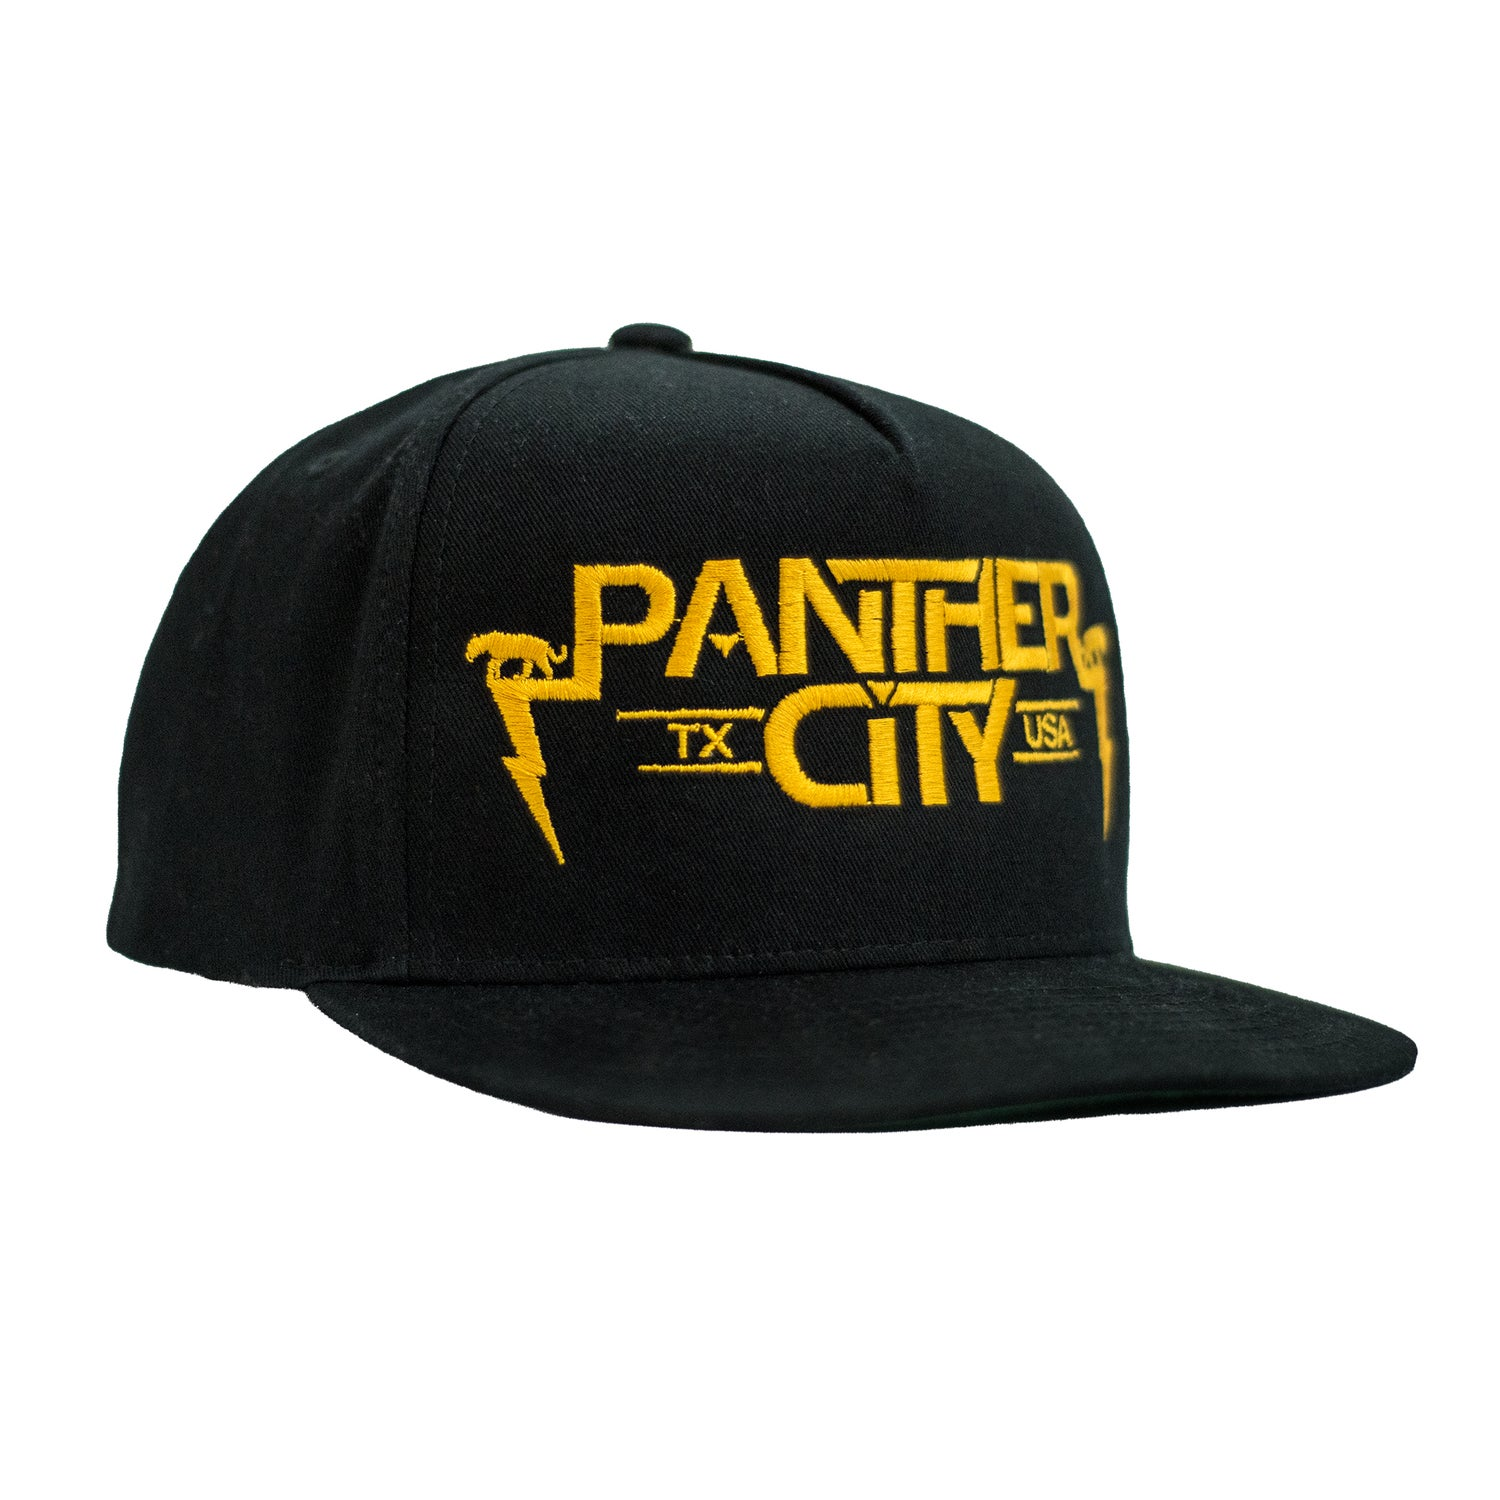 Image of Panther City Snapback